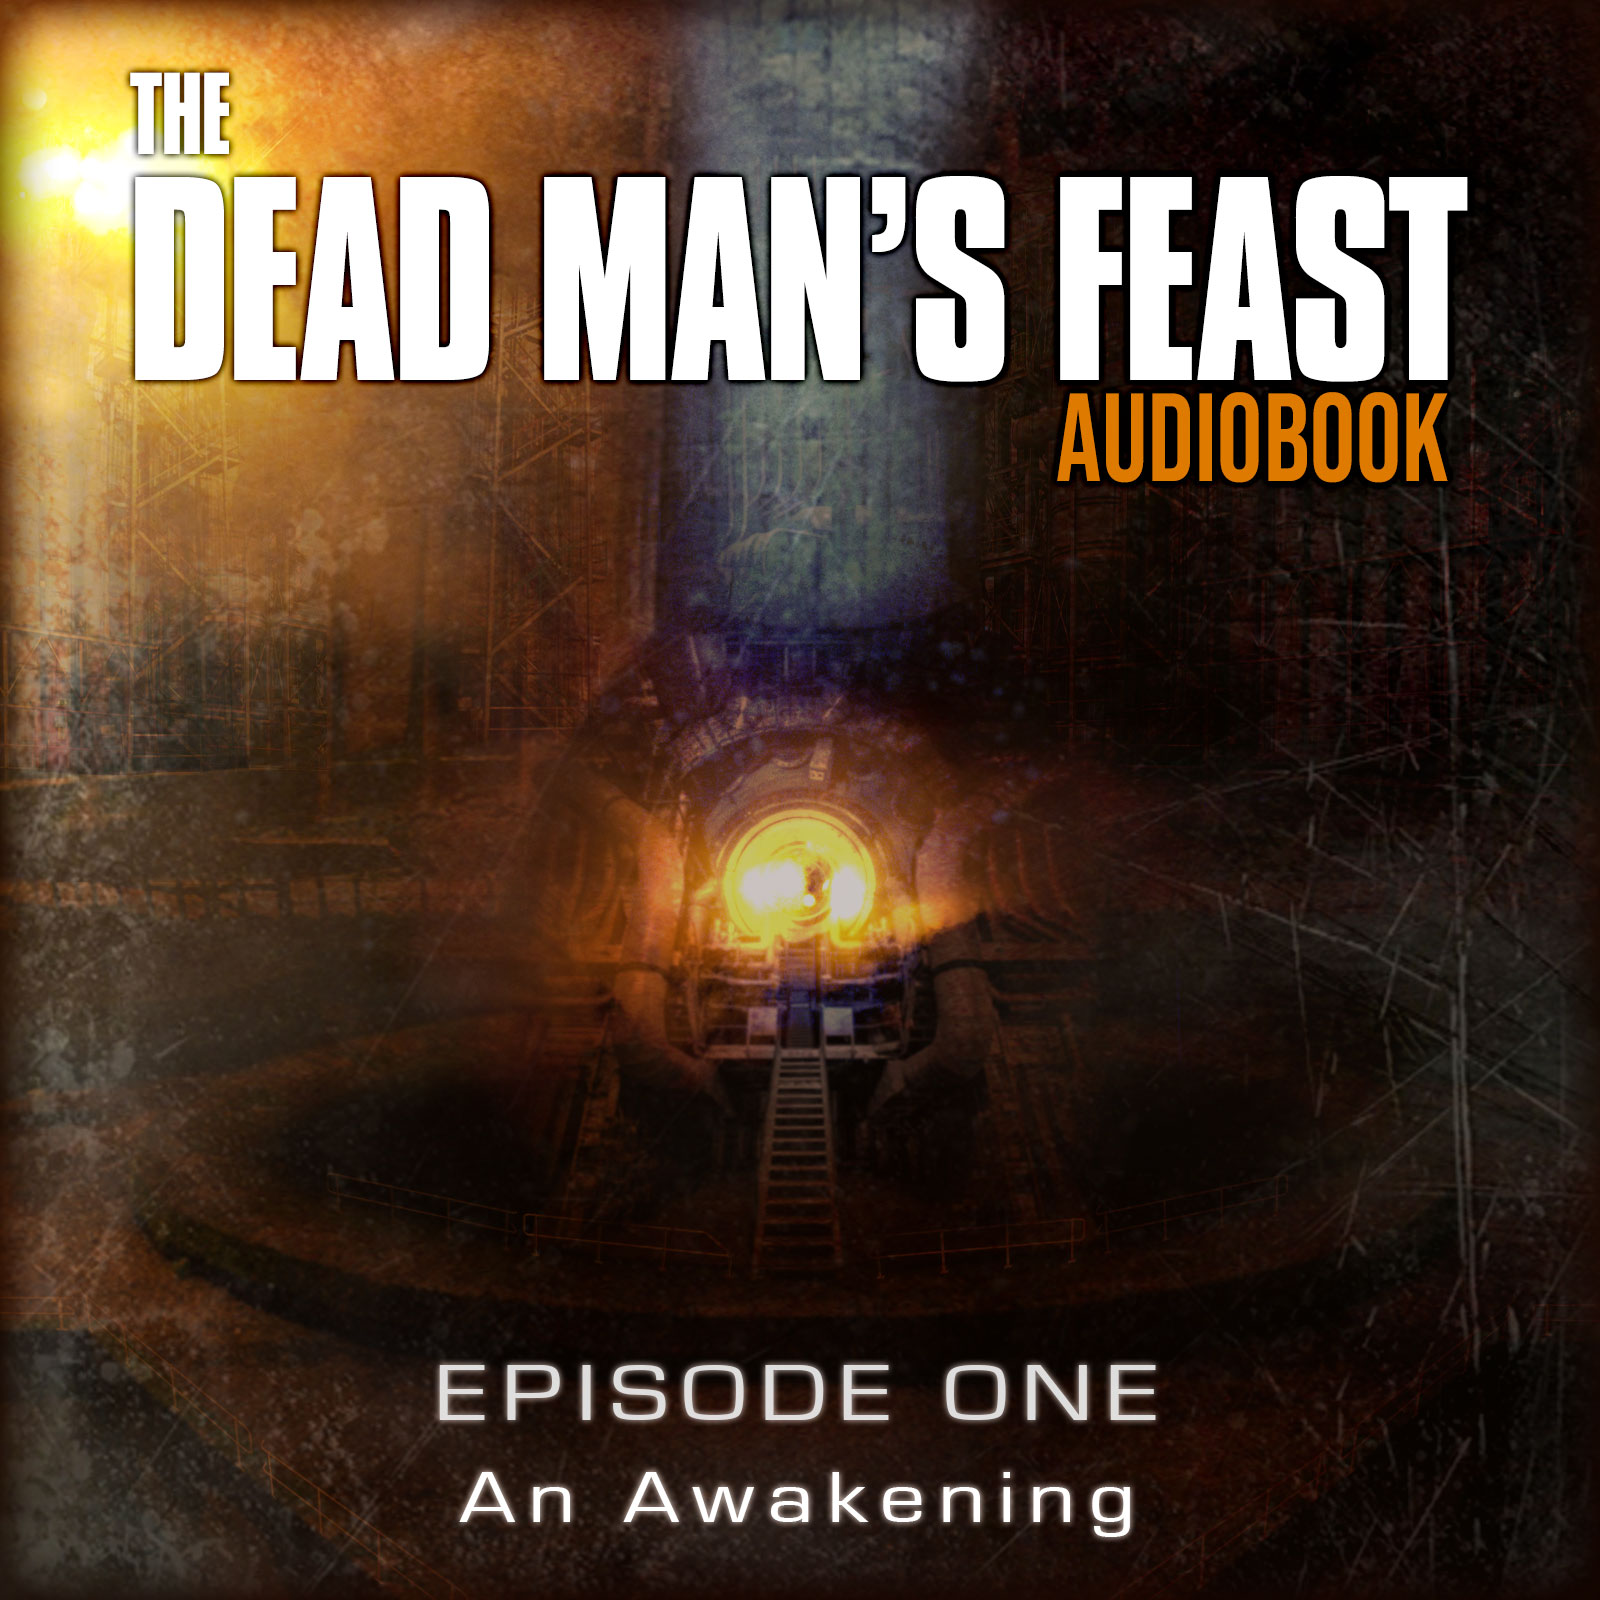 The Dead Man's Feast